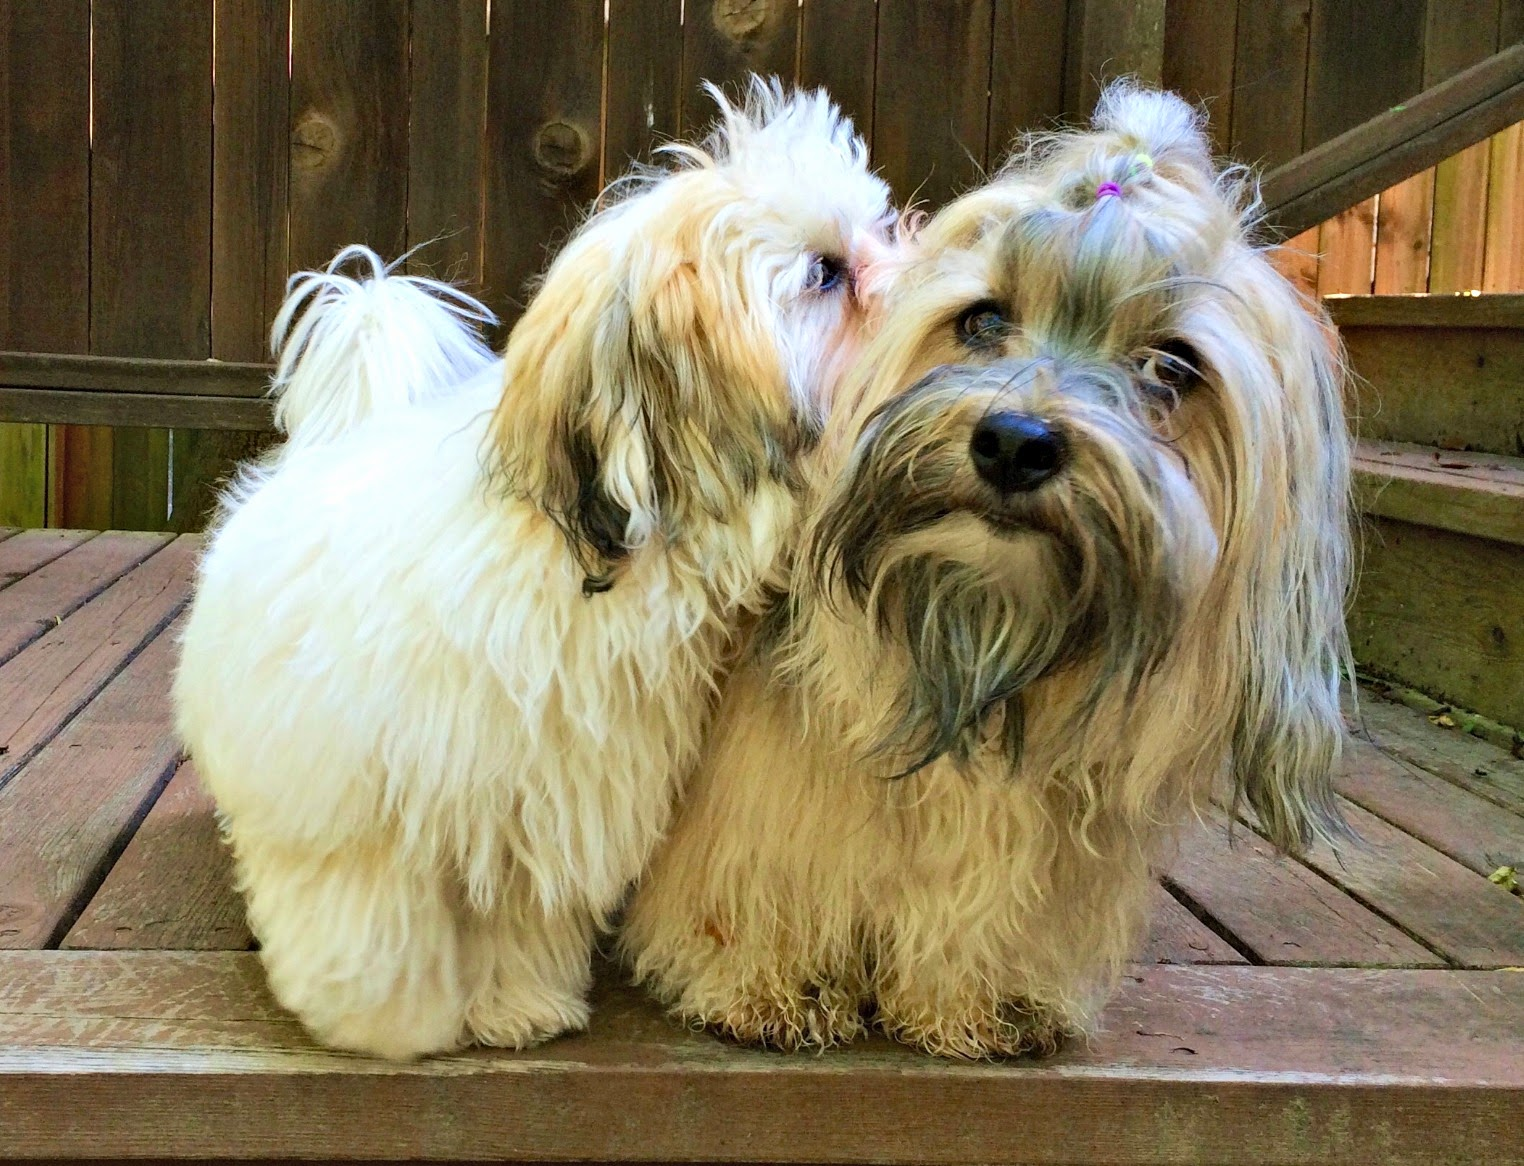 To Dog With Love Puppyhoodcom Offers Help With Raising A Puppy - 26 dogs puppyhood photos